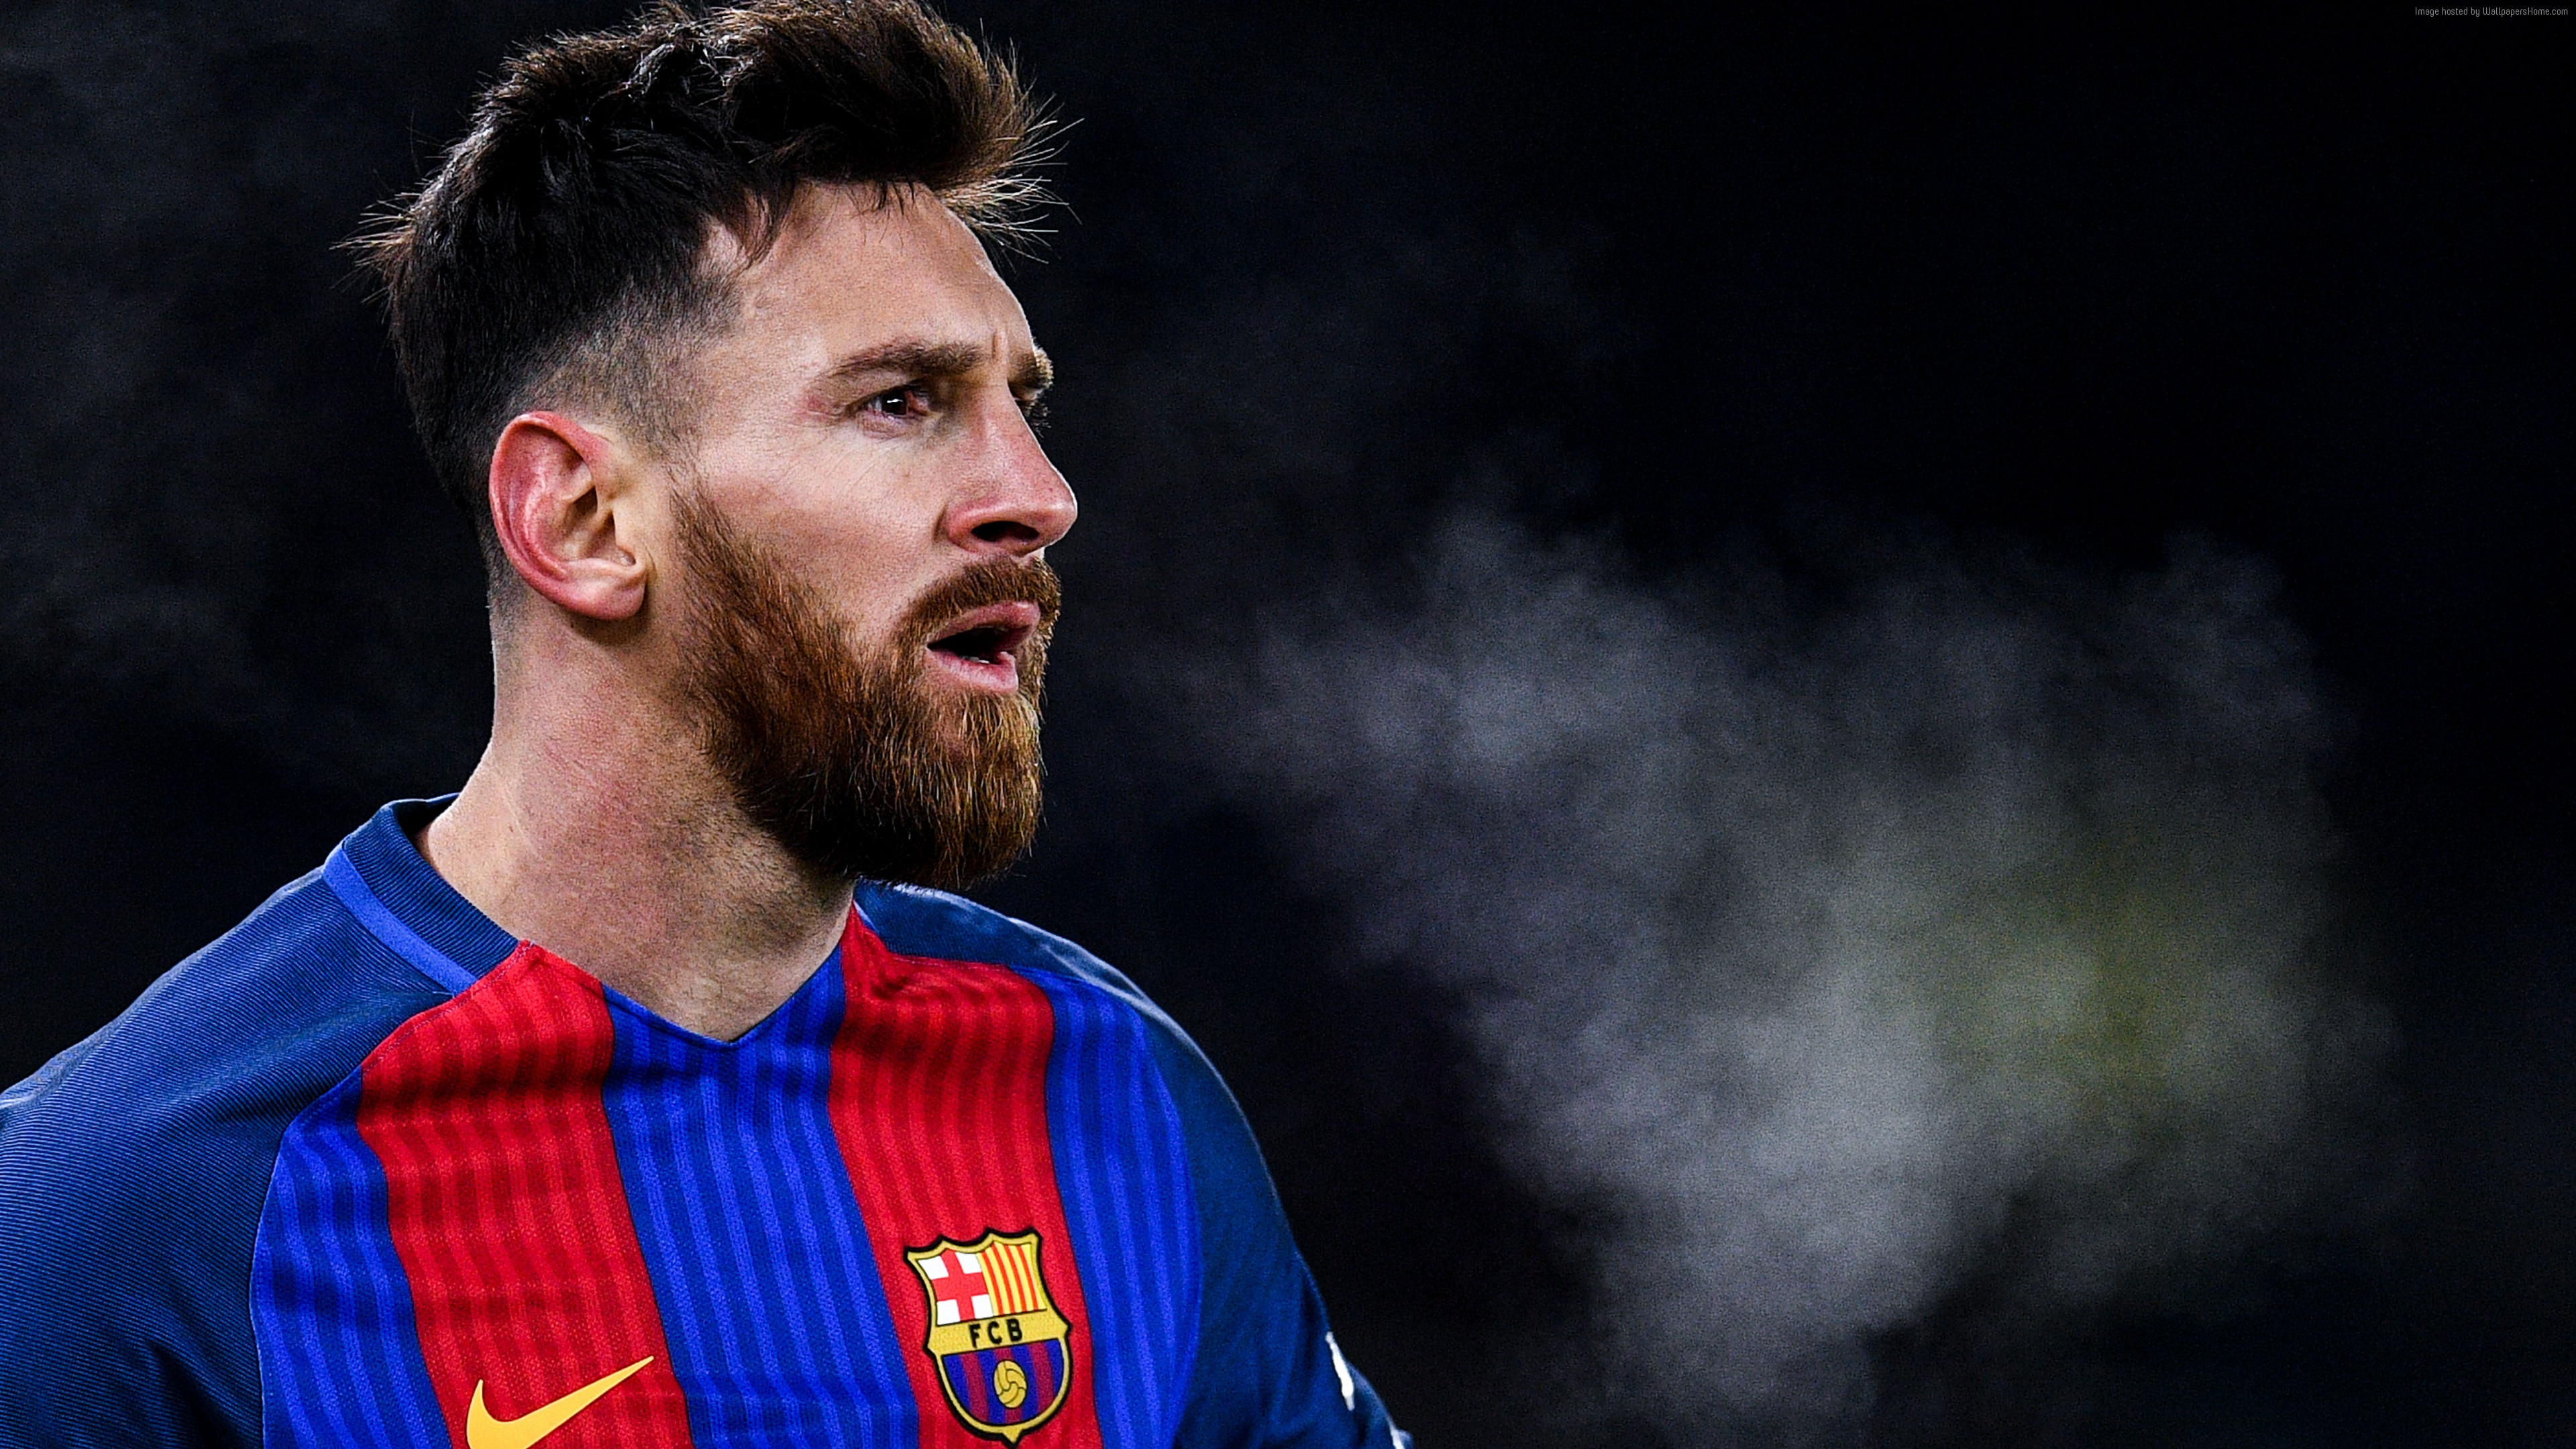 Wallpaper Lionel Messi Soccer Football The Best Players 2016 4k Sport Download